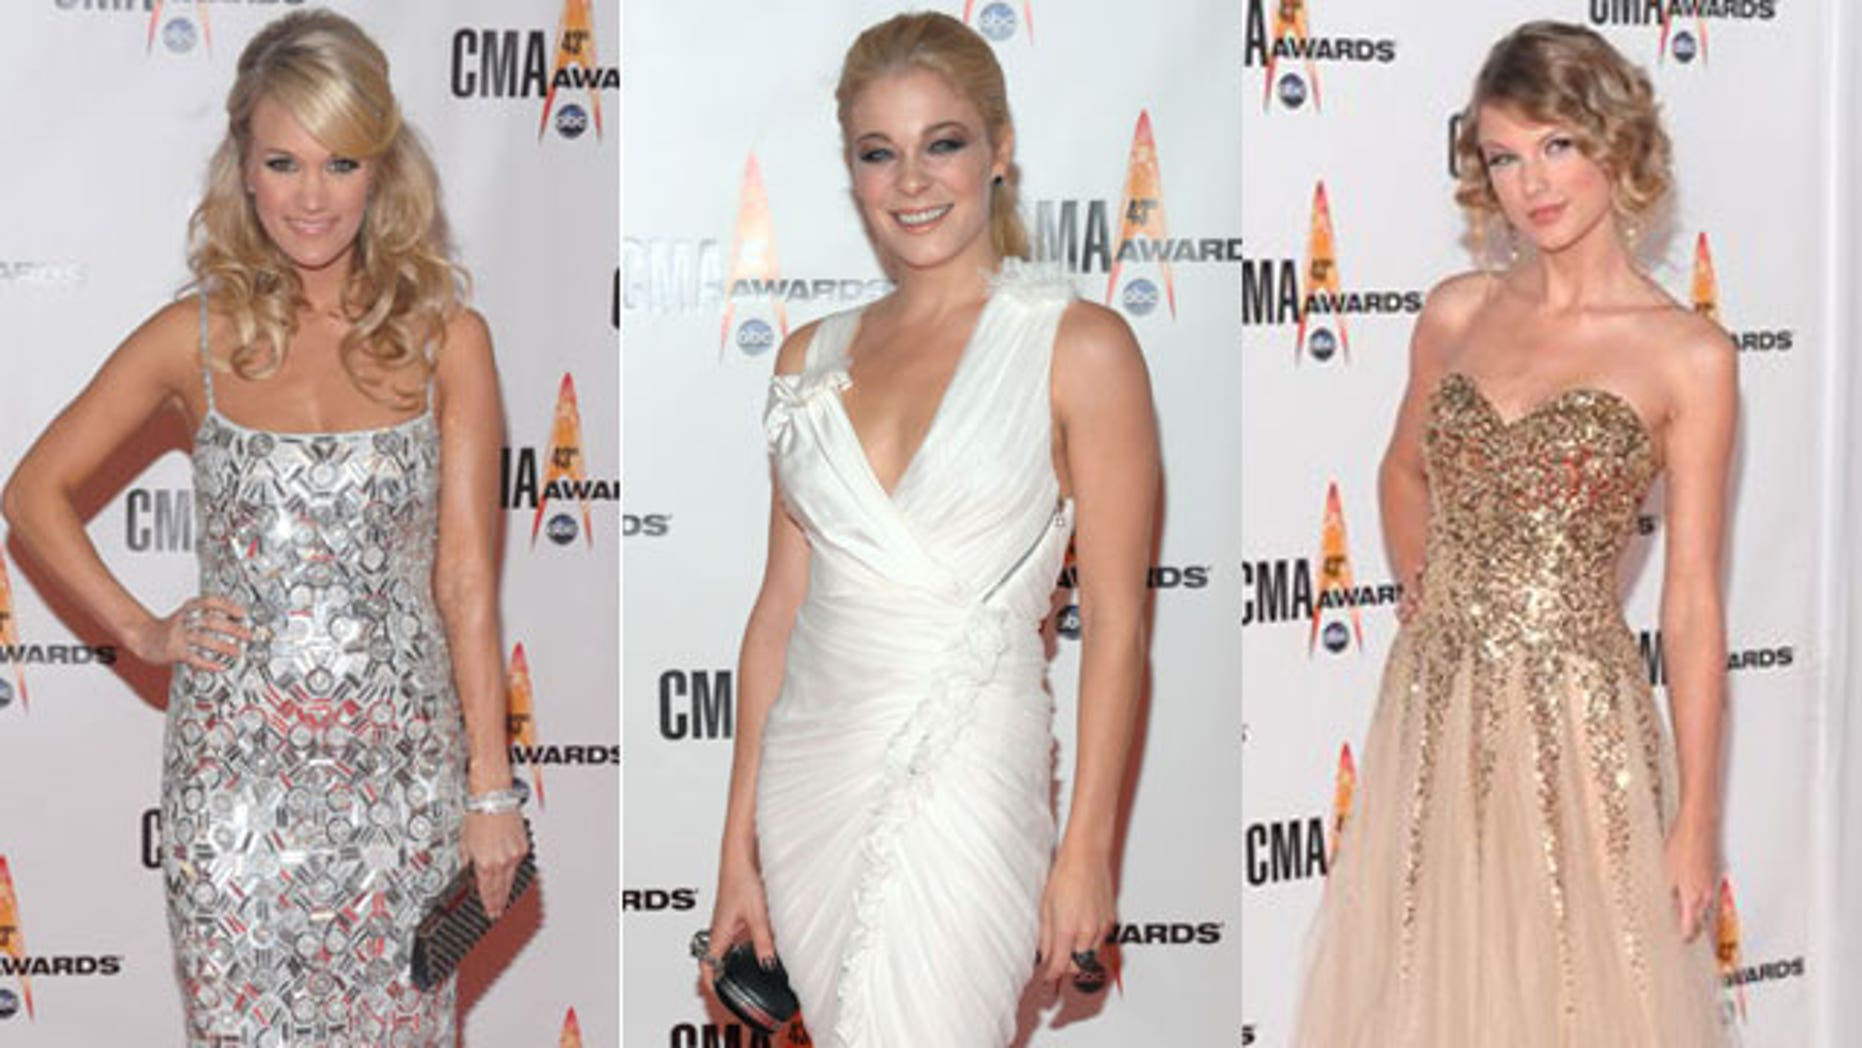 Carrie Underwood, LeAnn Rimes and Taylor Swift had some of the top looks of the night.